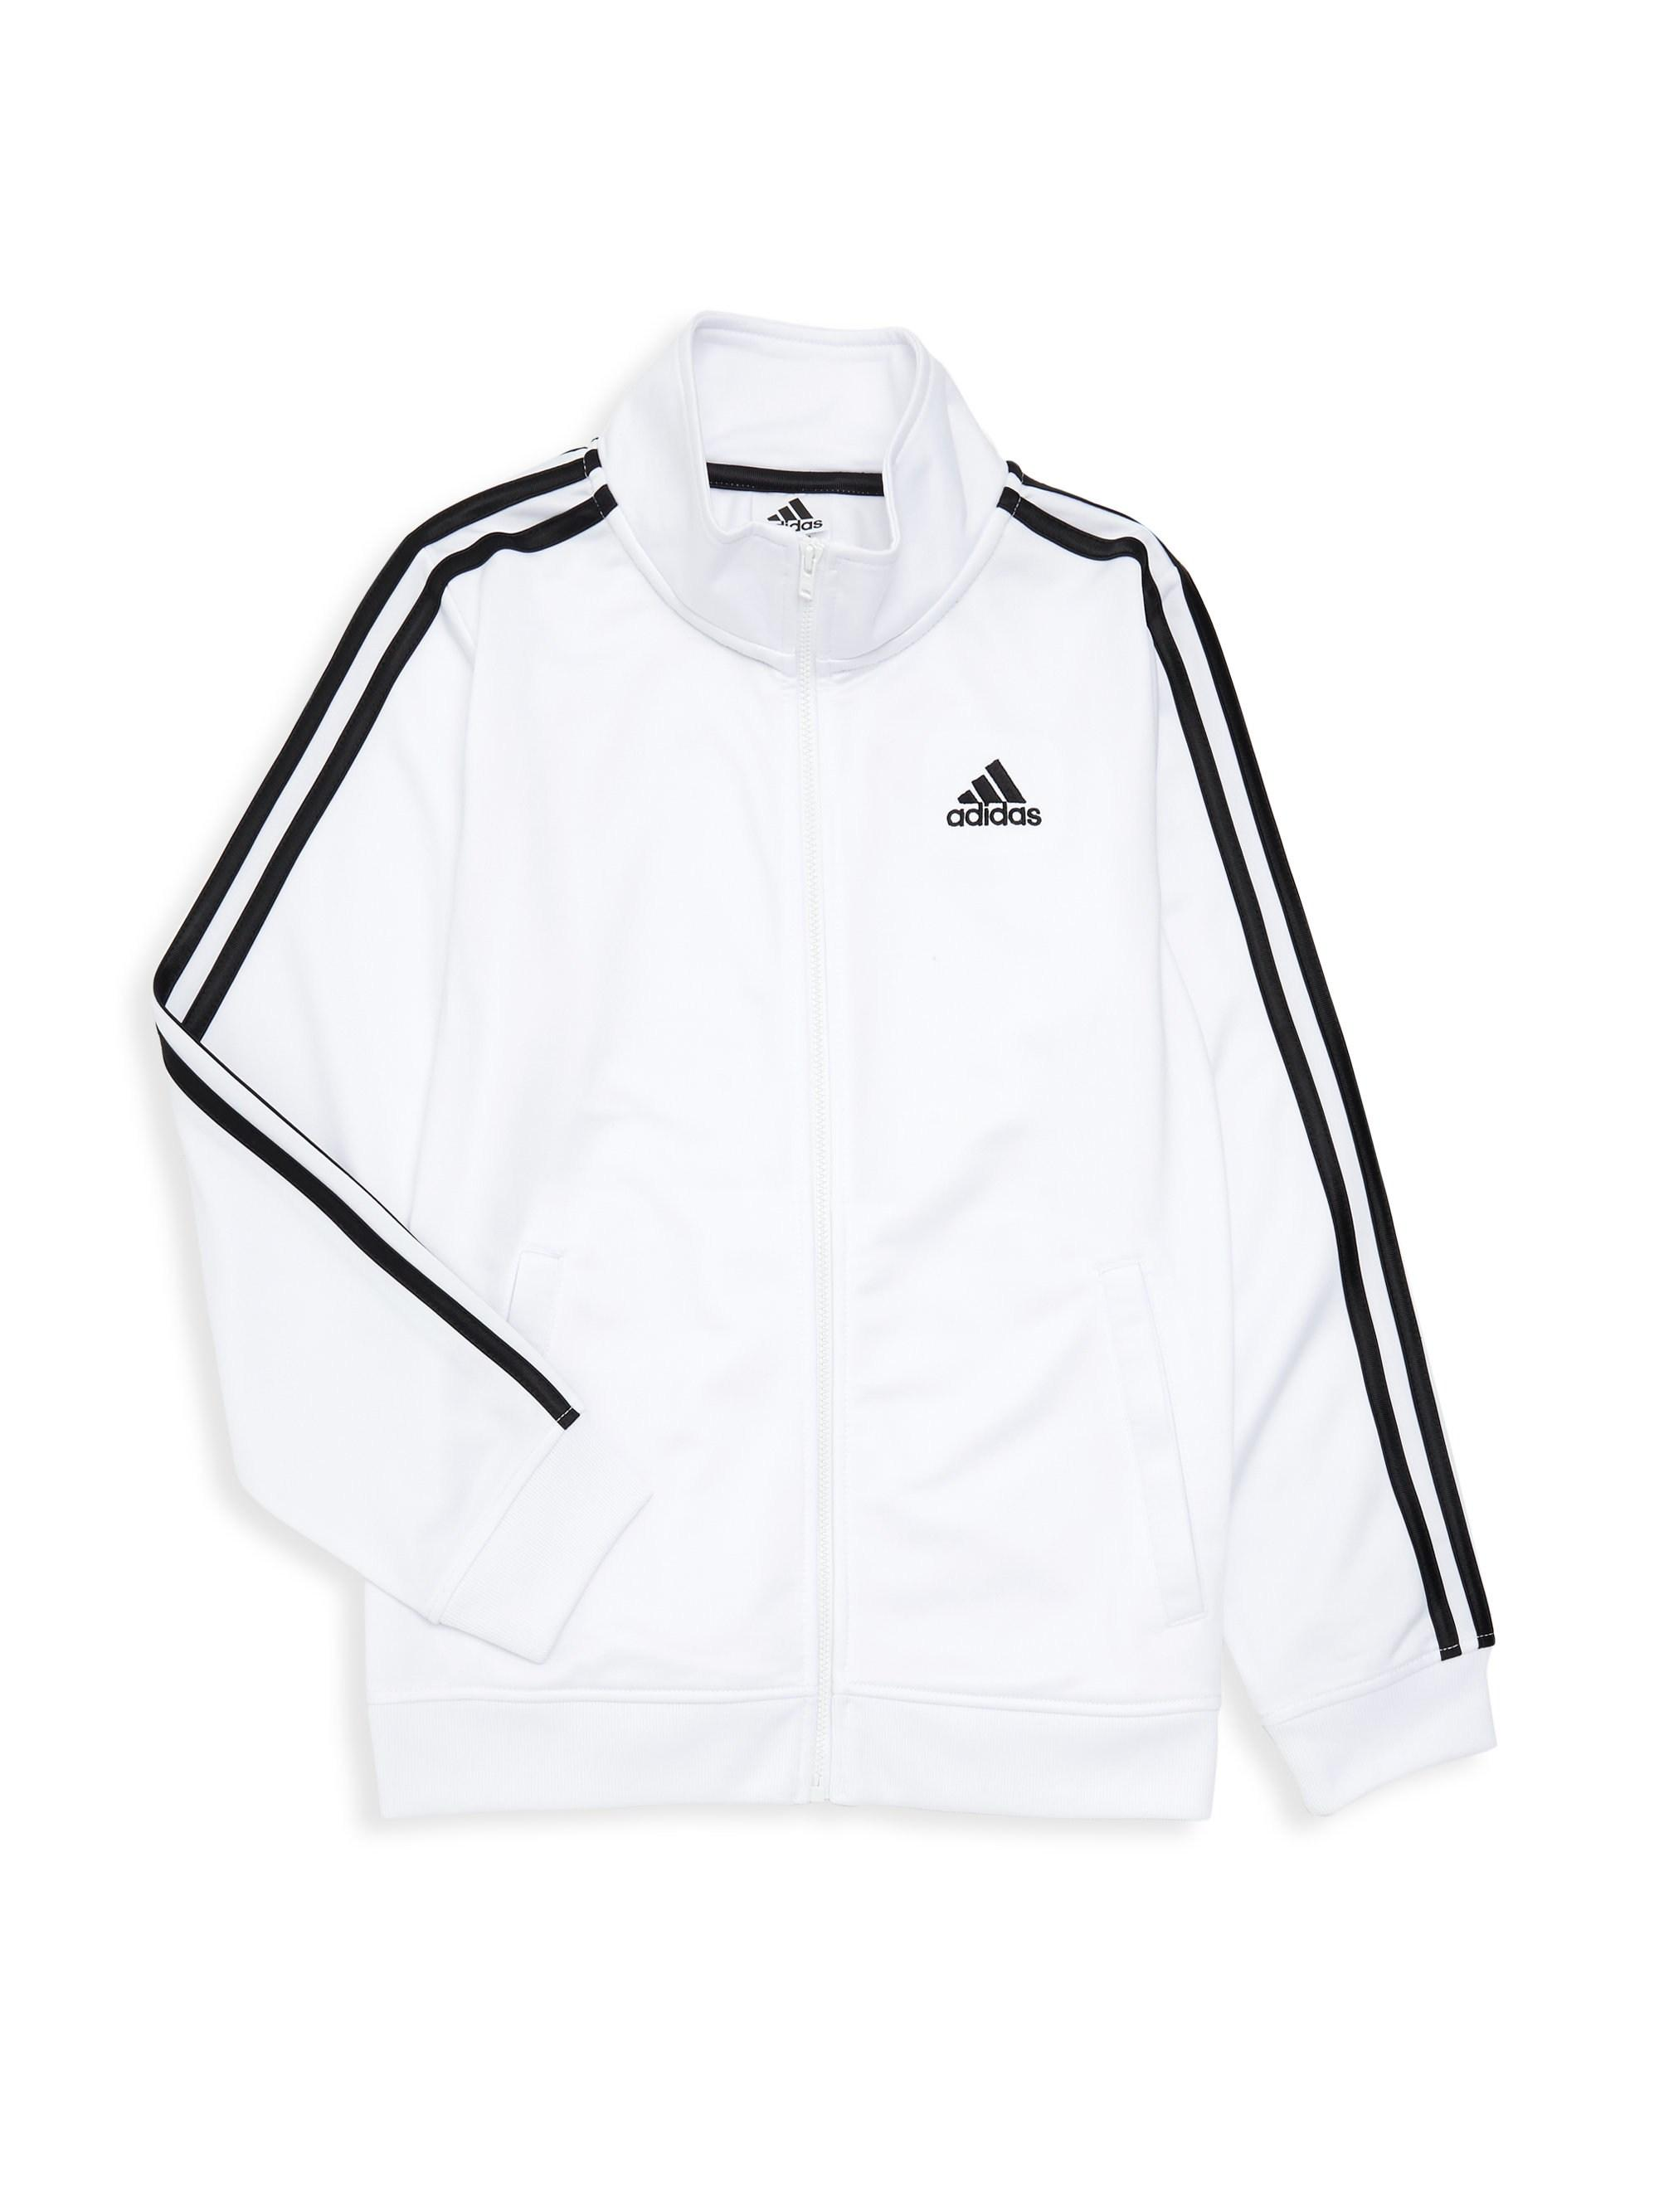 b017a39dd adidas Little Boy's Iconic Tricot Jacket in White for Men - Lyst